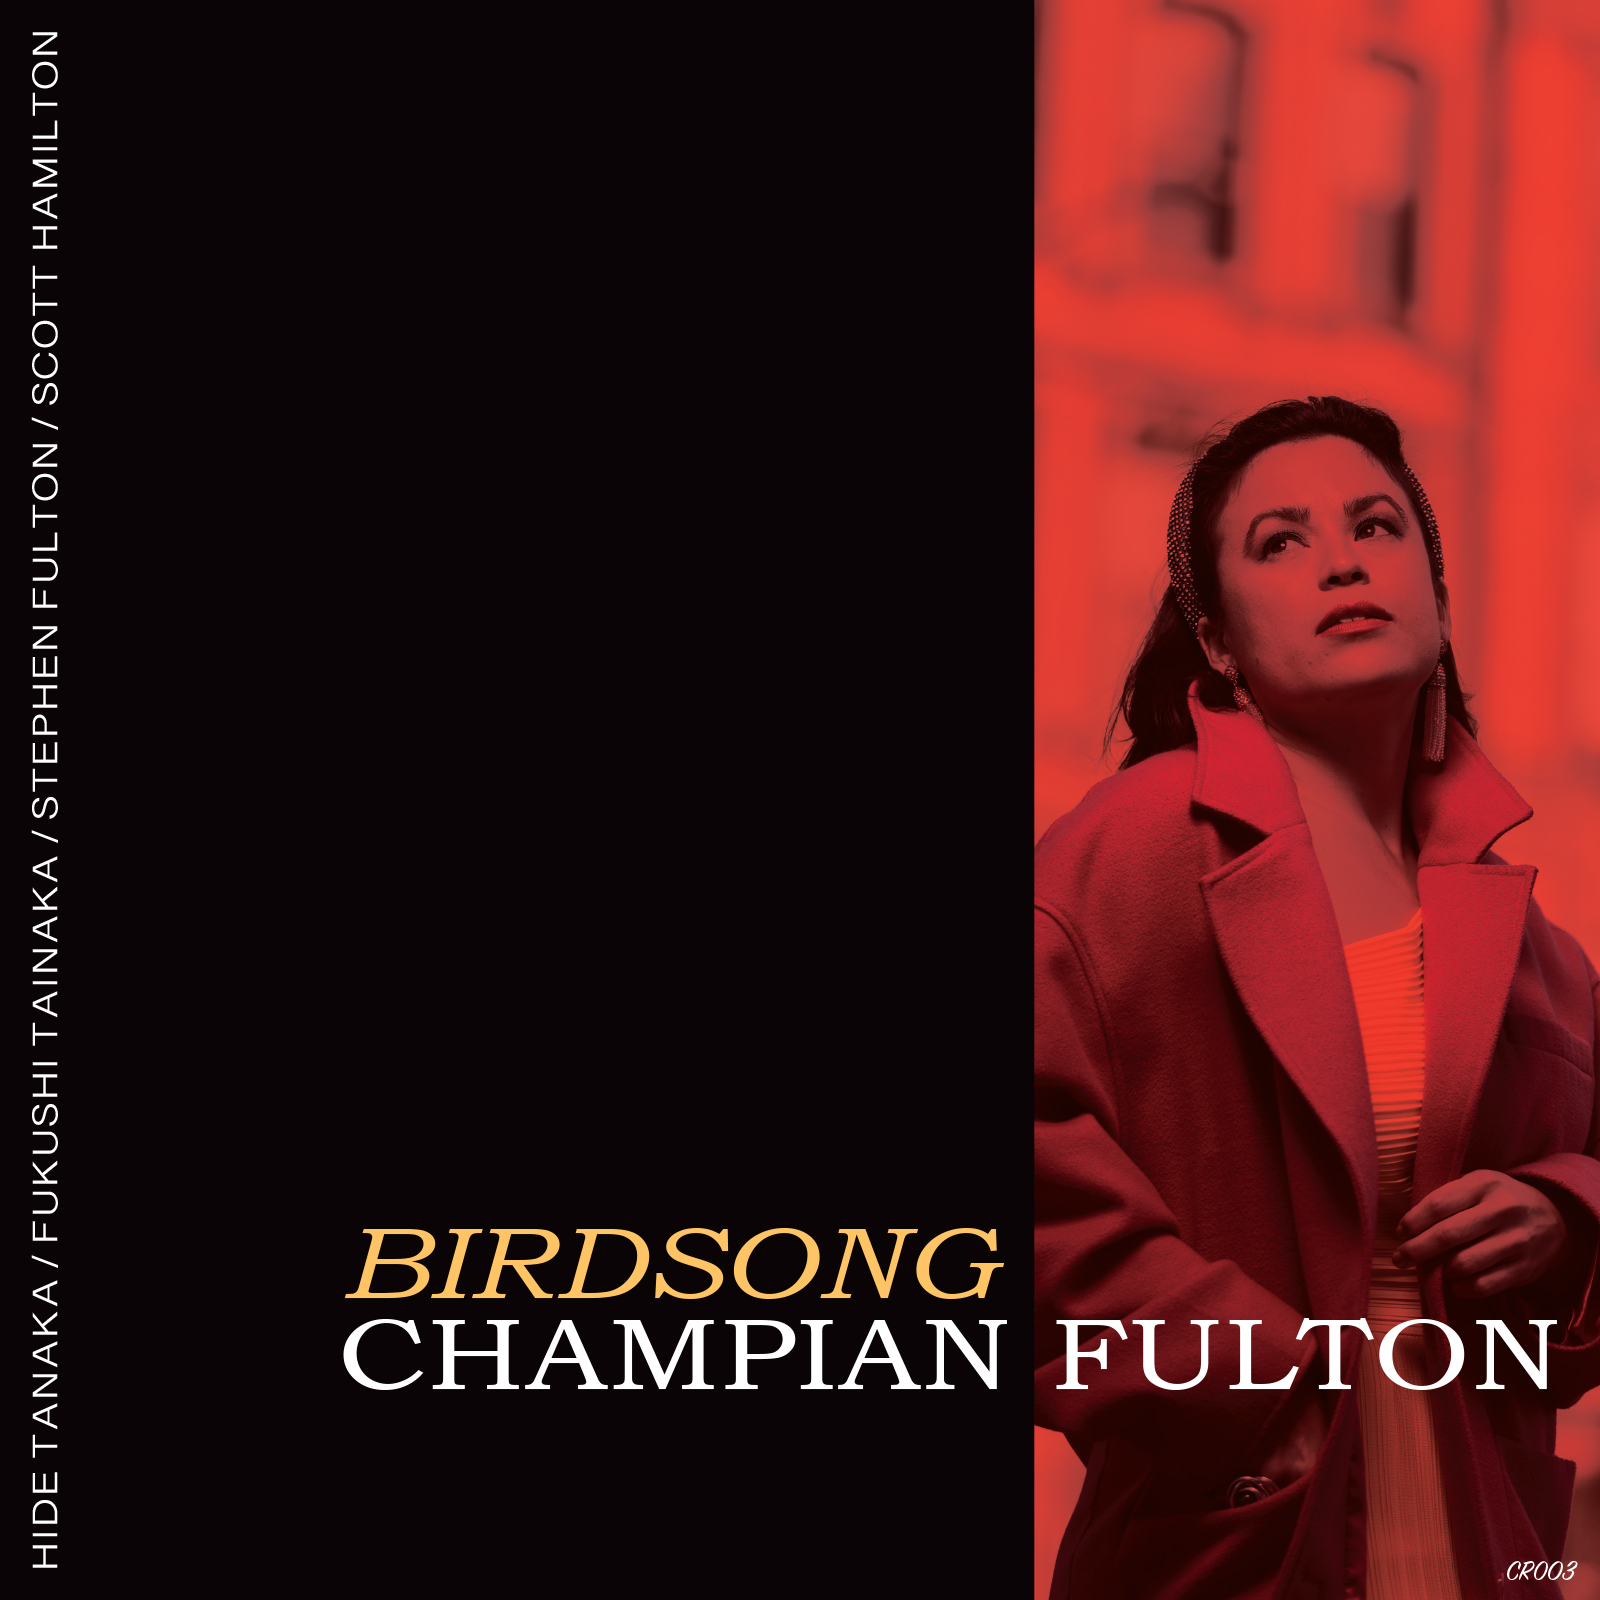 REVIEW: Champian Fulton Birdsong – Making A Scene!